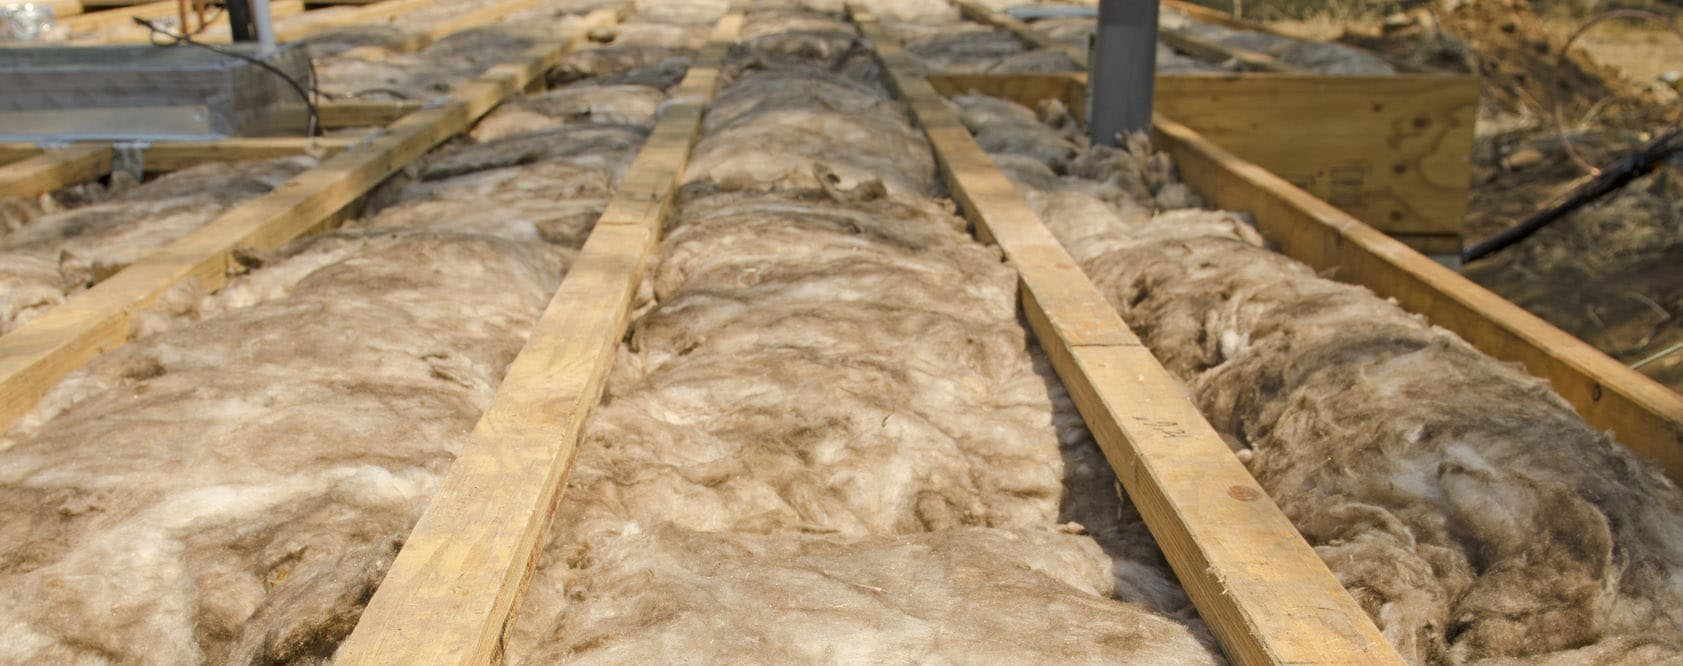 Top 5 Places Where Asbestos Could be Lurking in Your Home